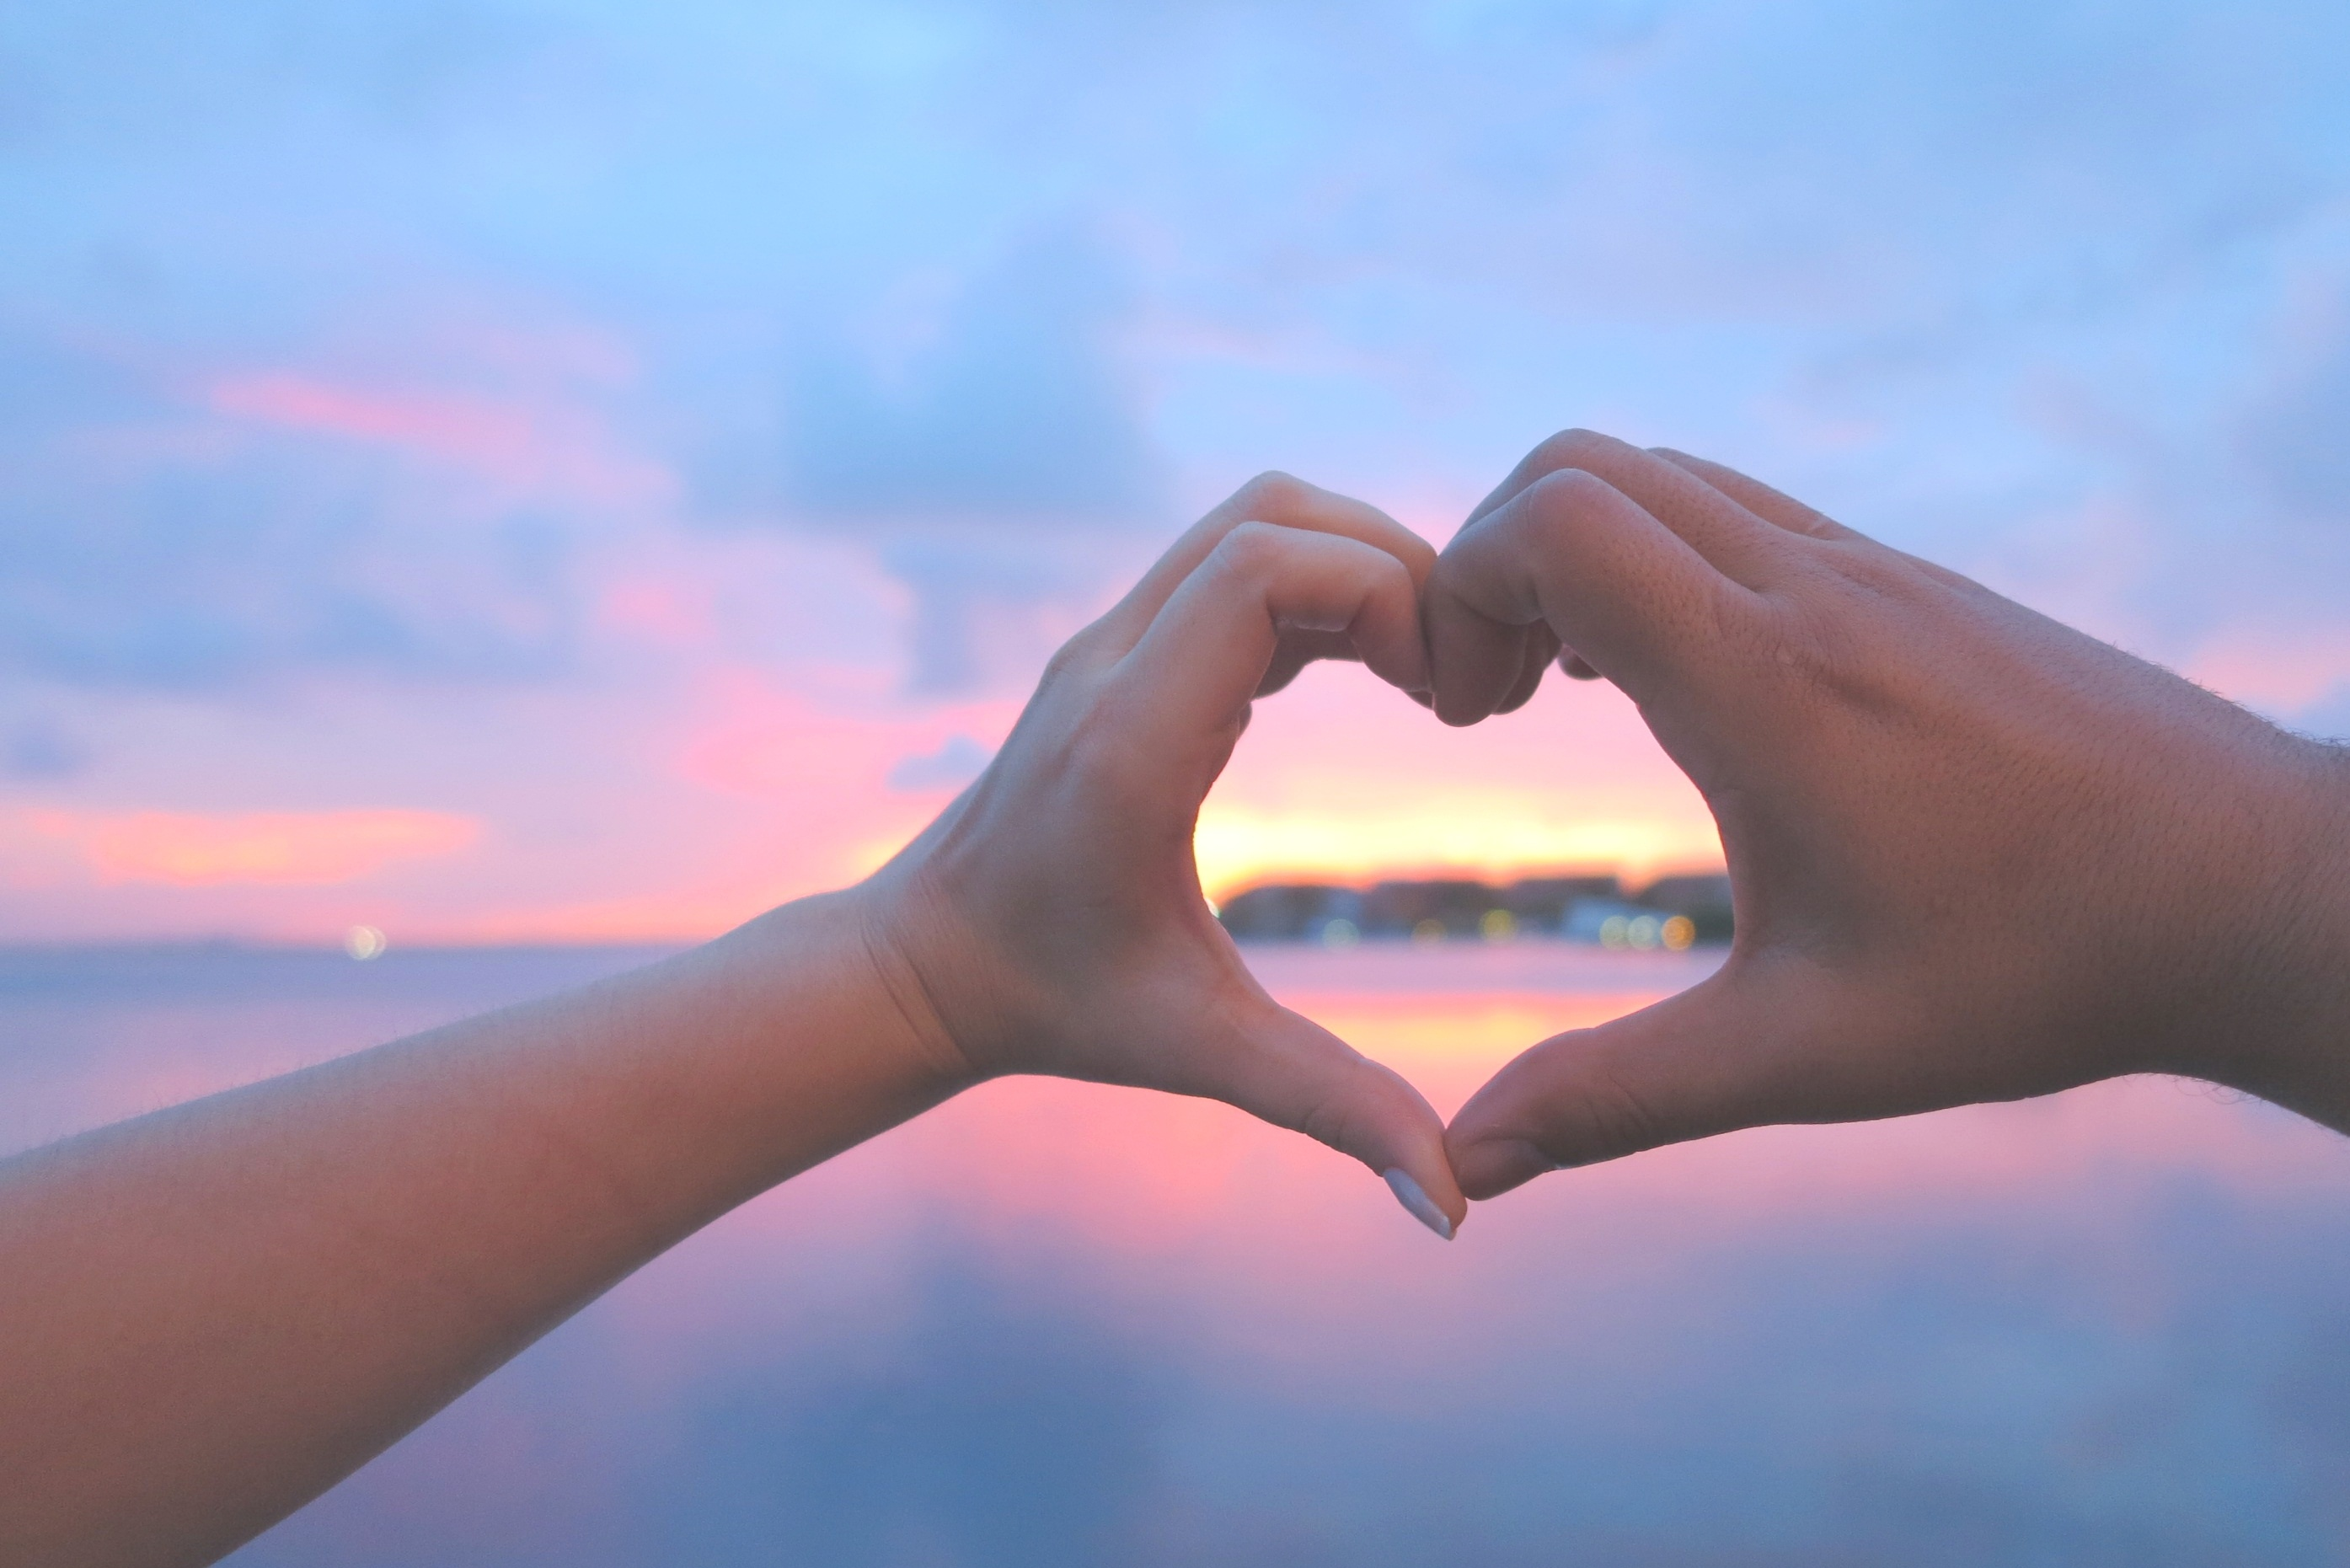 Uncategorized Hands In A Heart heart shape hands sunset websites with a download